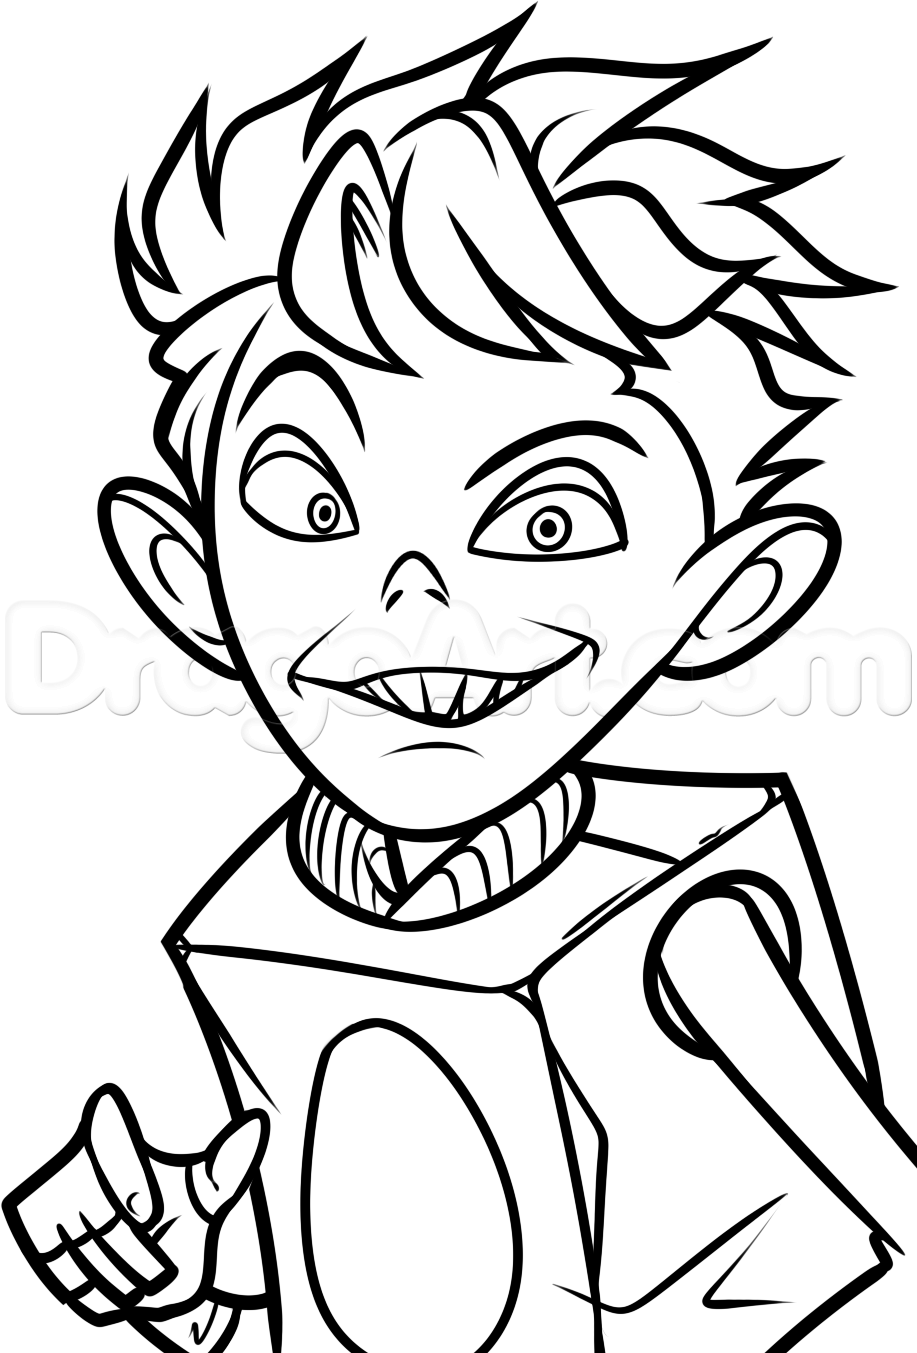 boxtrolls coloring pages - photo#10